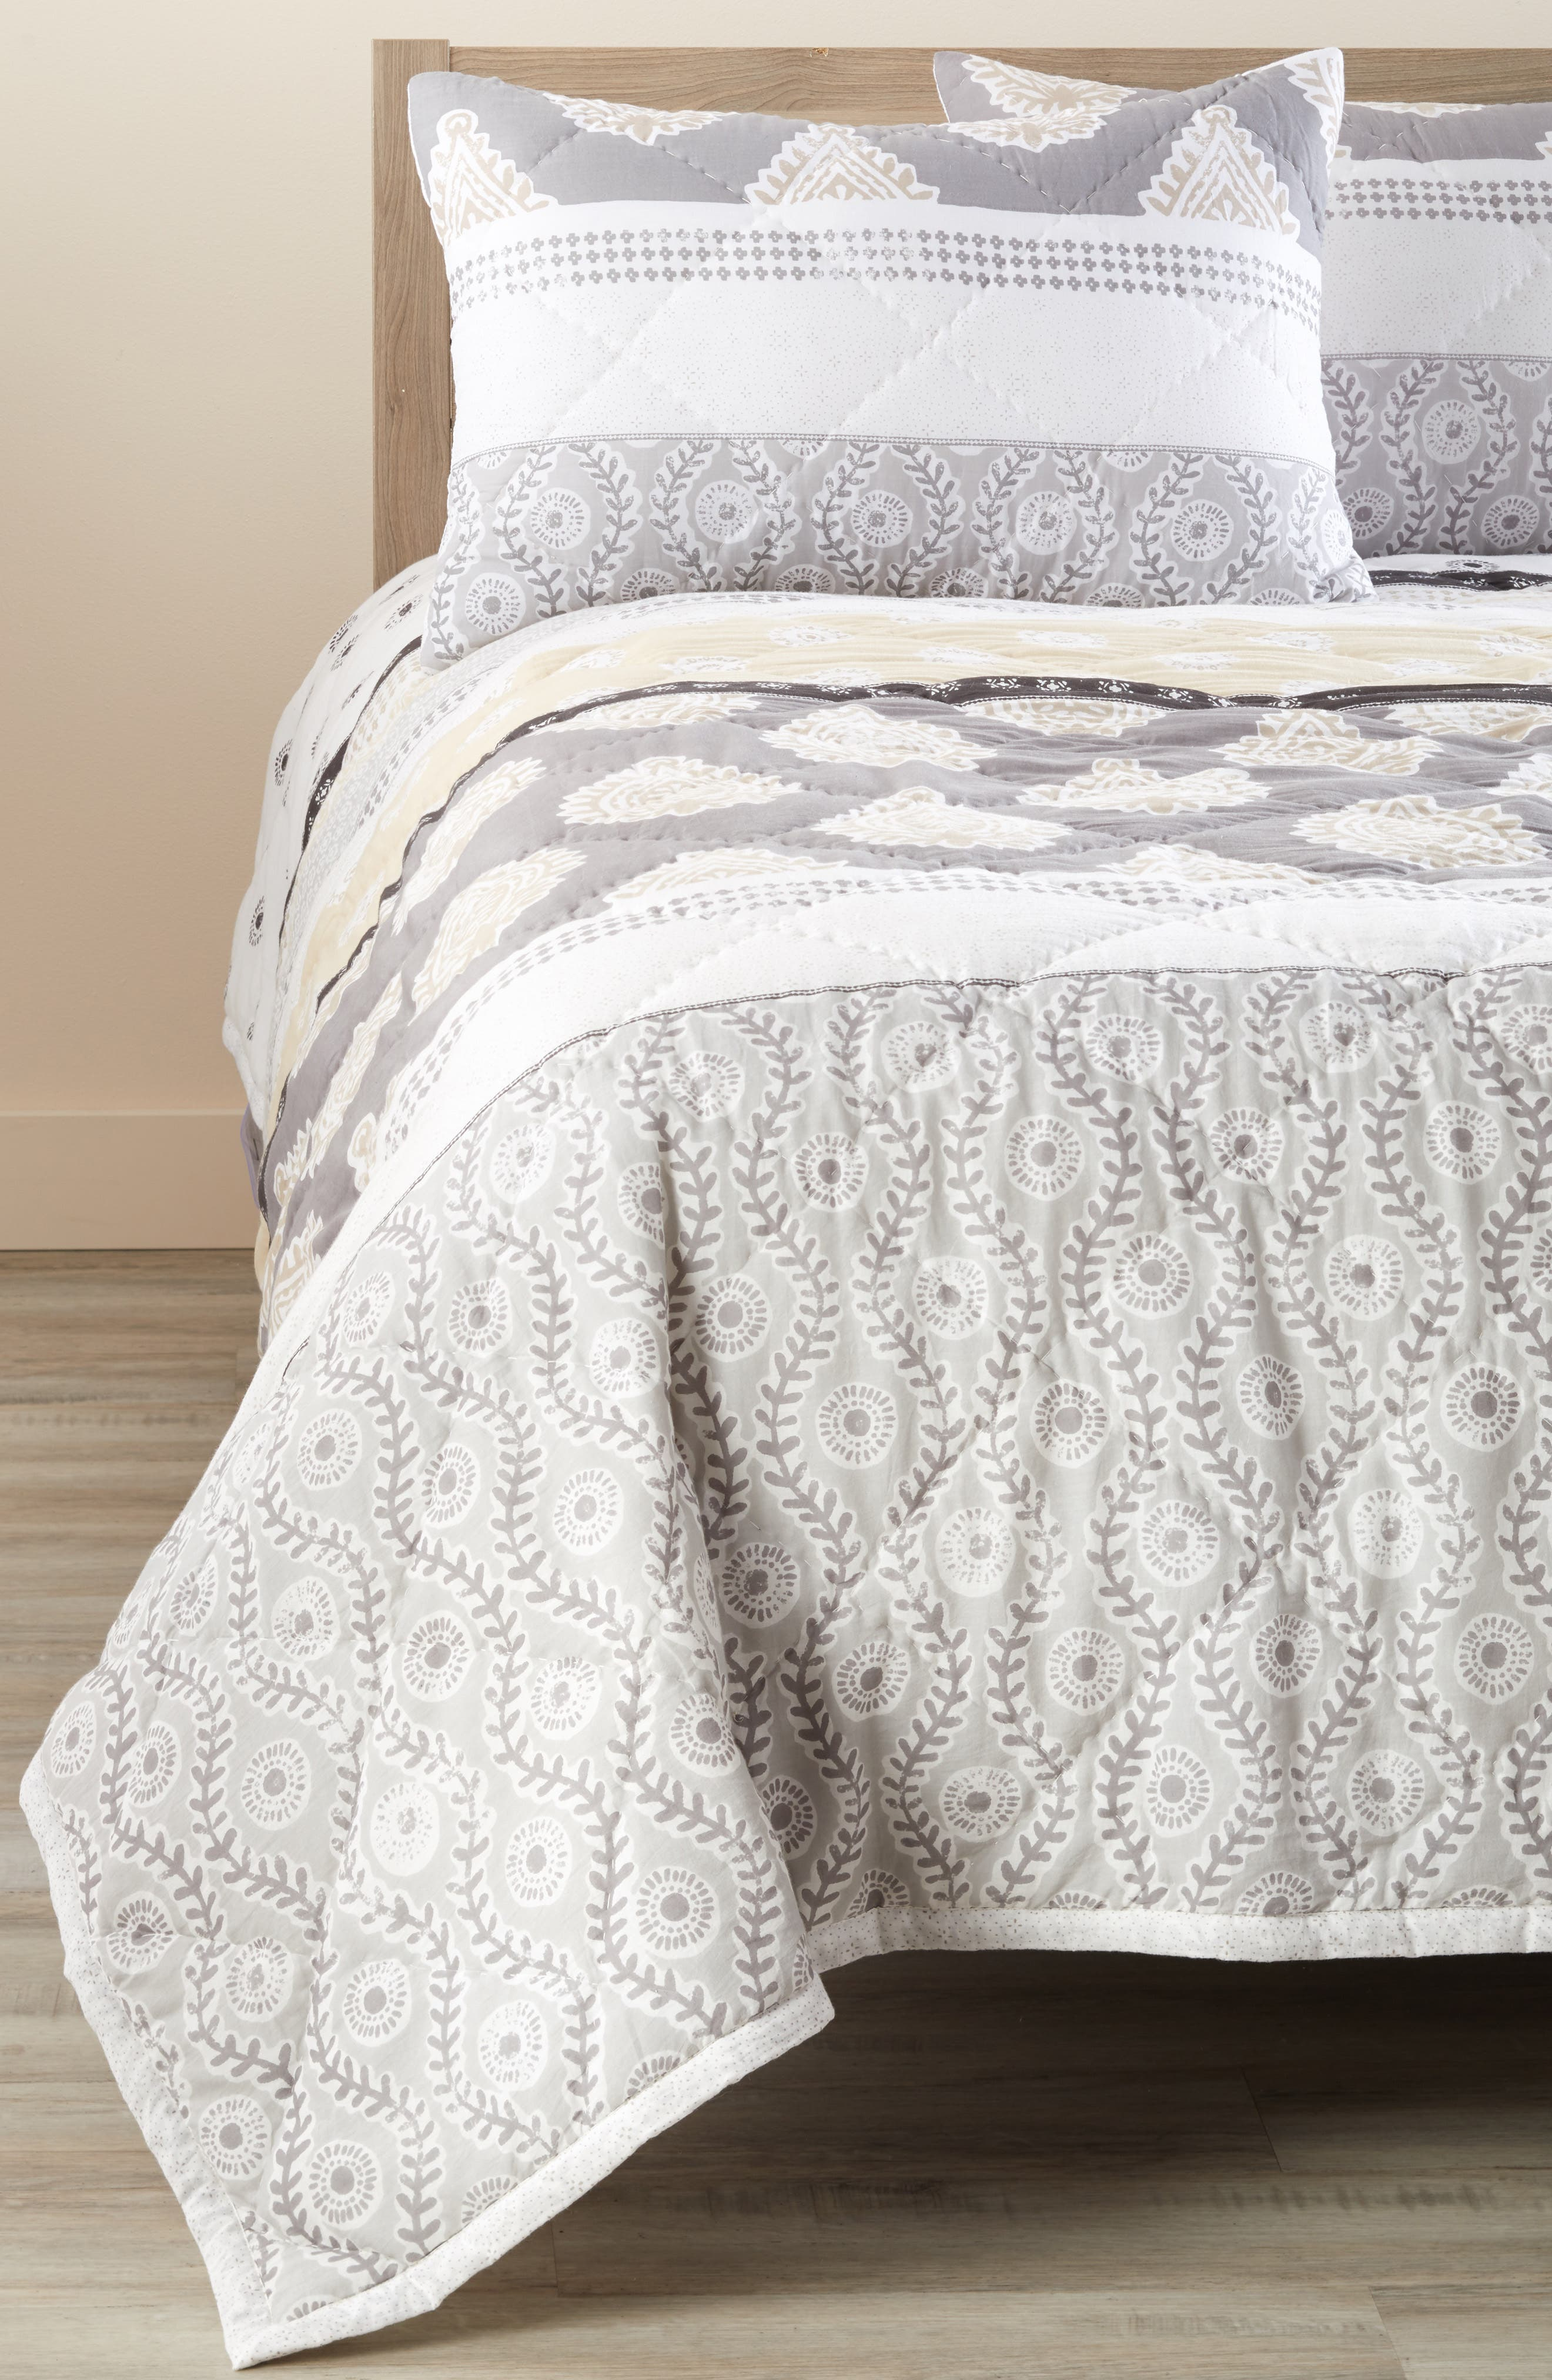 Nordstrom at Home Block Print Comforter